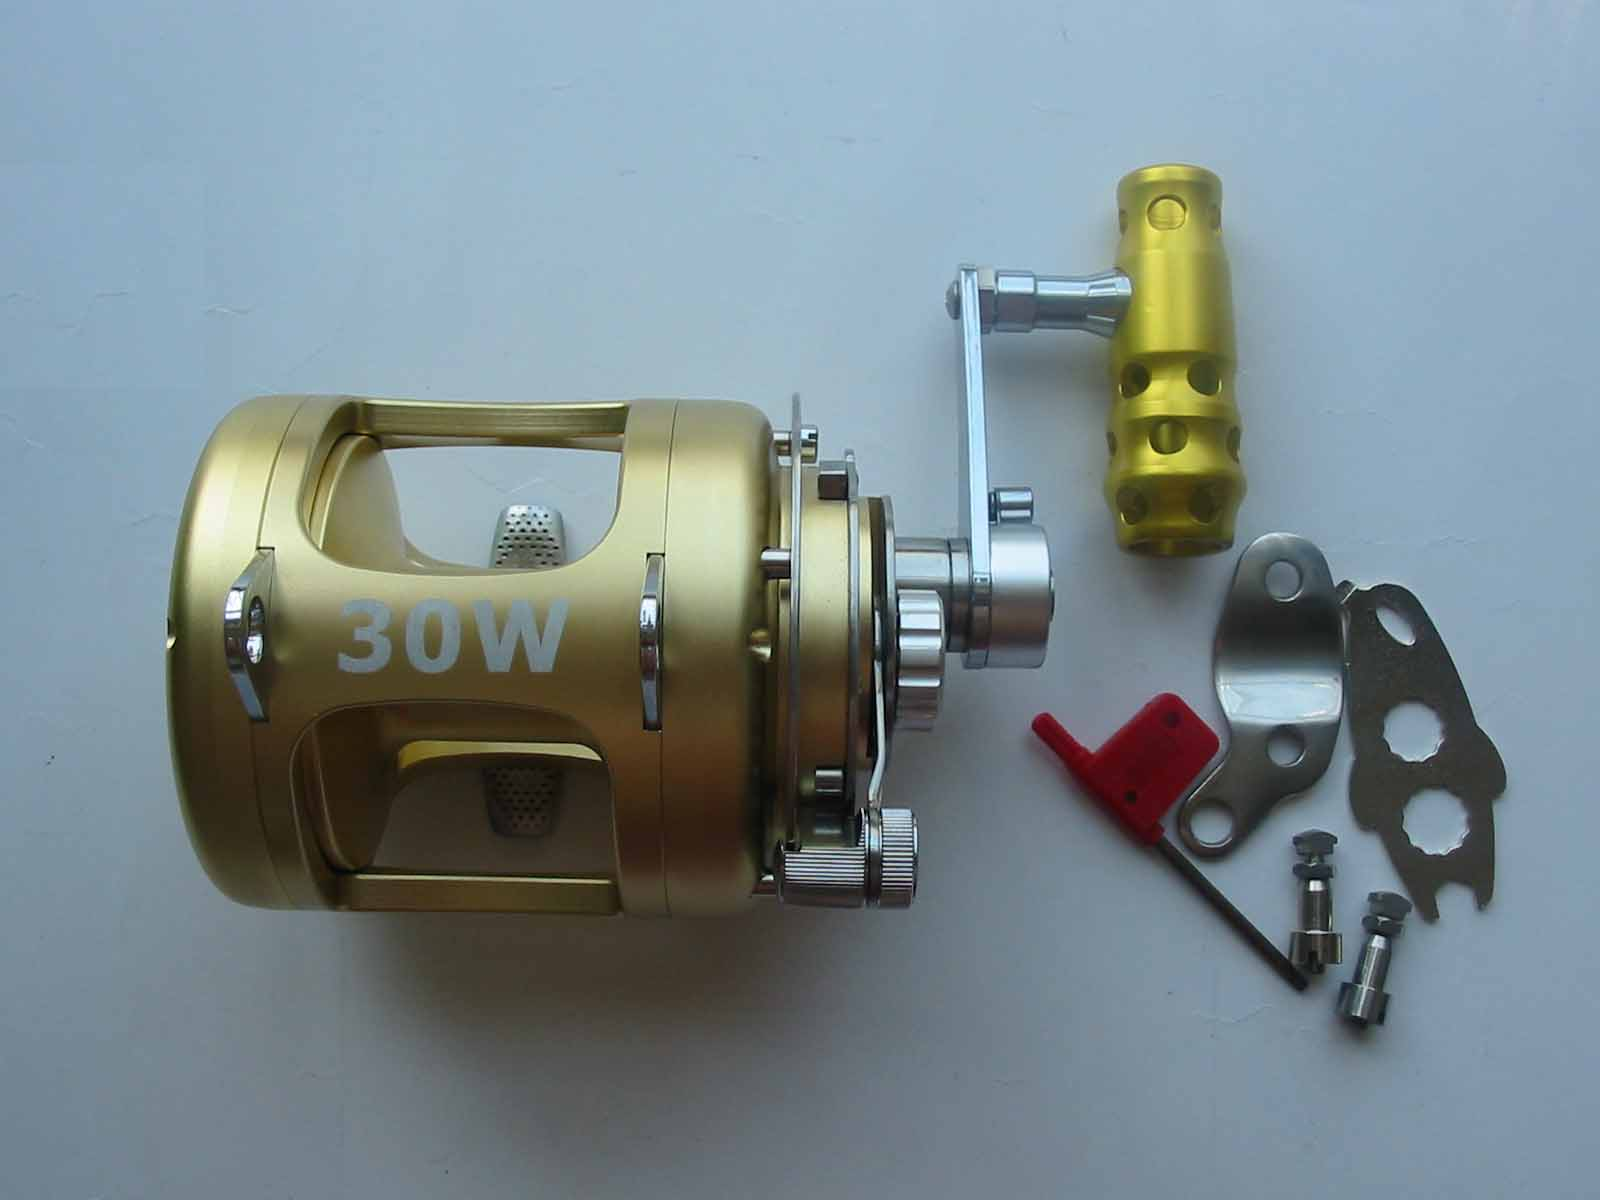 2 Speed Trolling Reels 30W